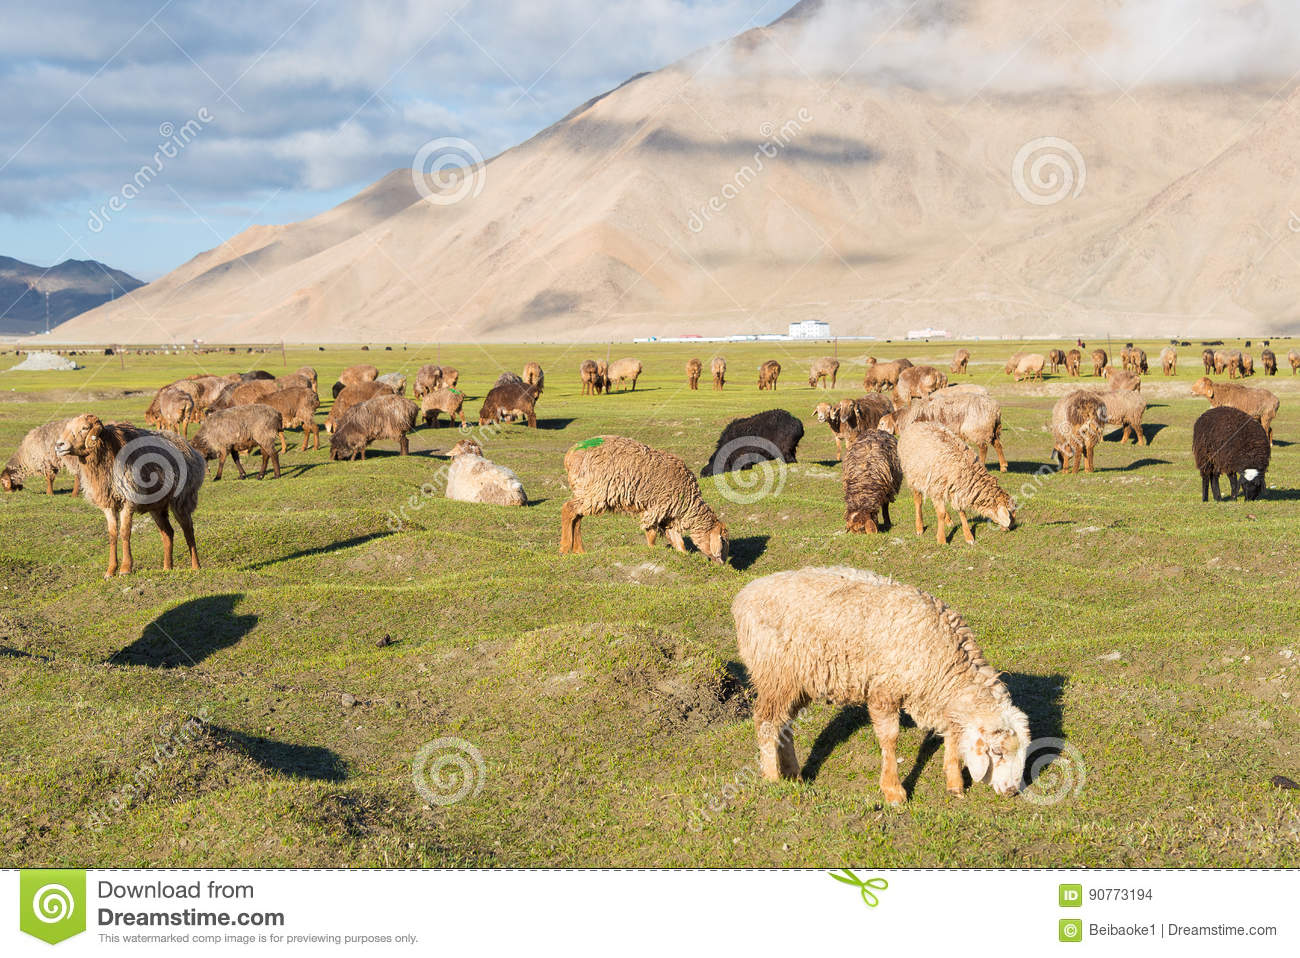 XINJIANG, CHINA - May 21 2015: Sheep at Karakul Lake. a famous l